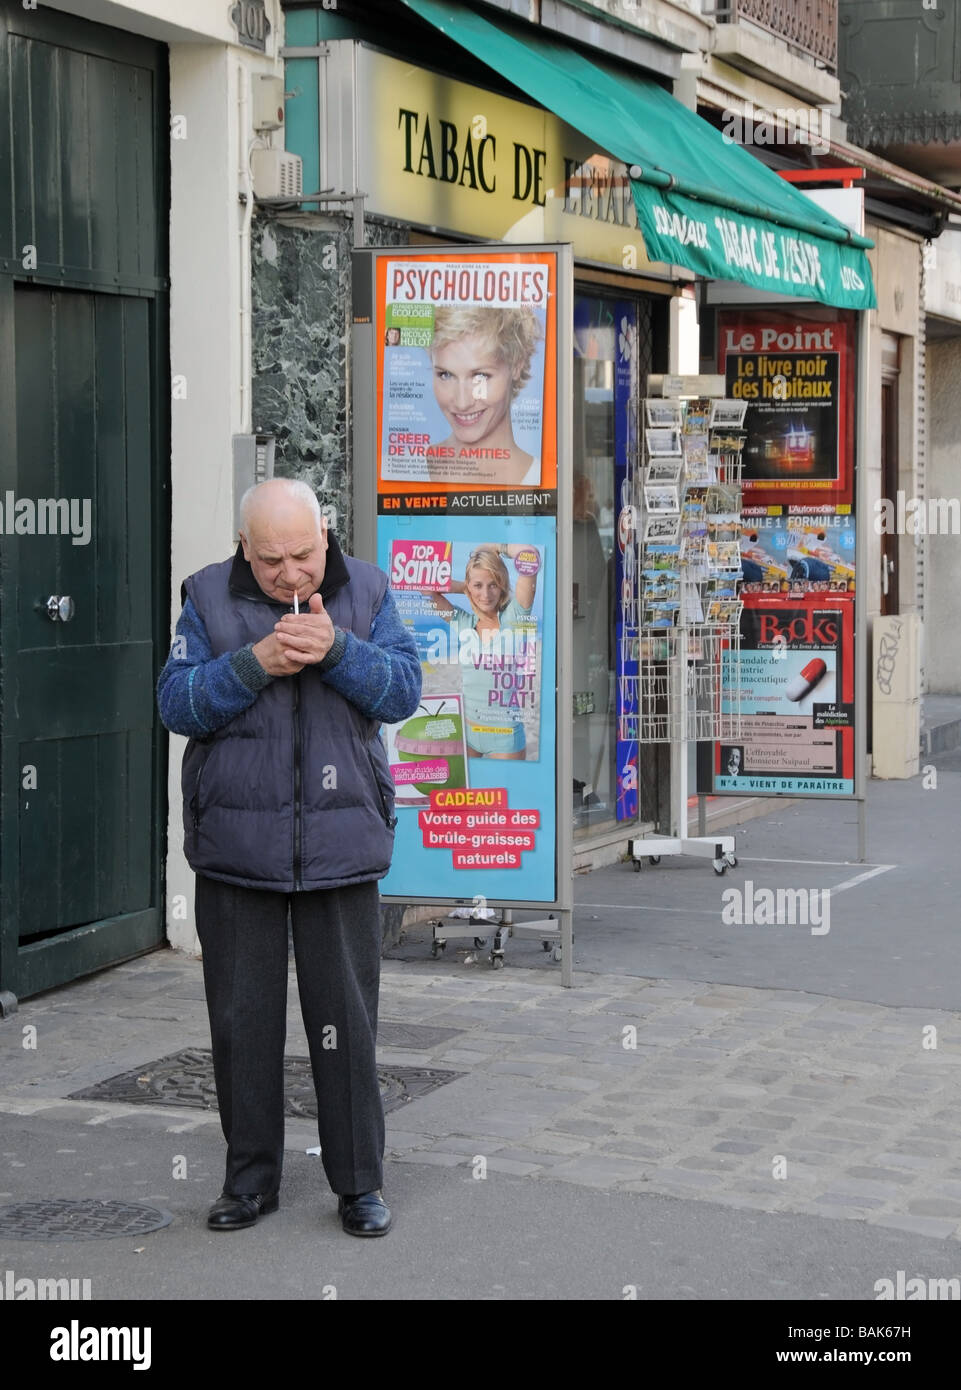 Man lightening his cigarette in front of a tobacco shop in Fontainebleau France - Stock Image